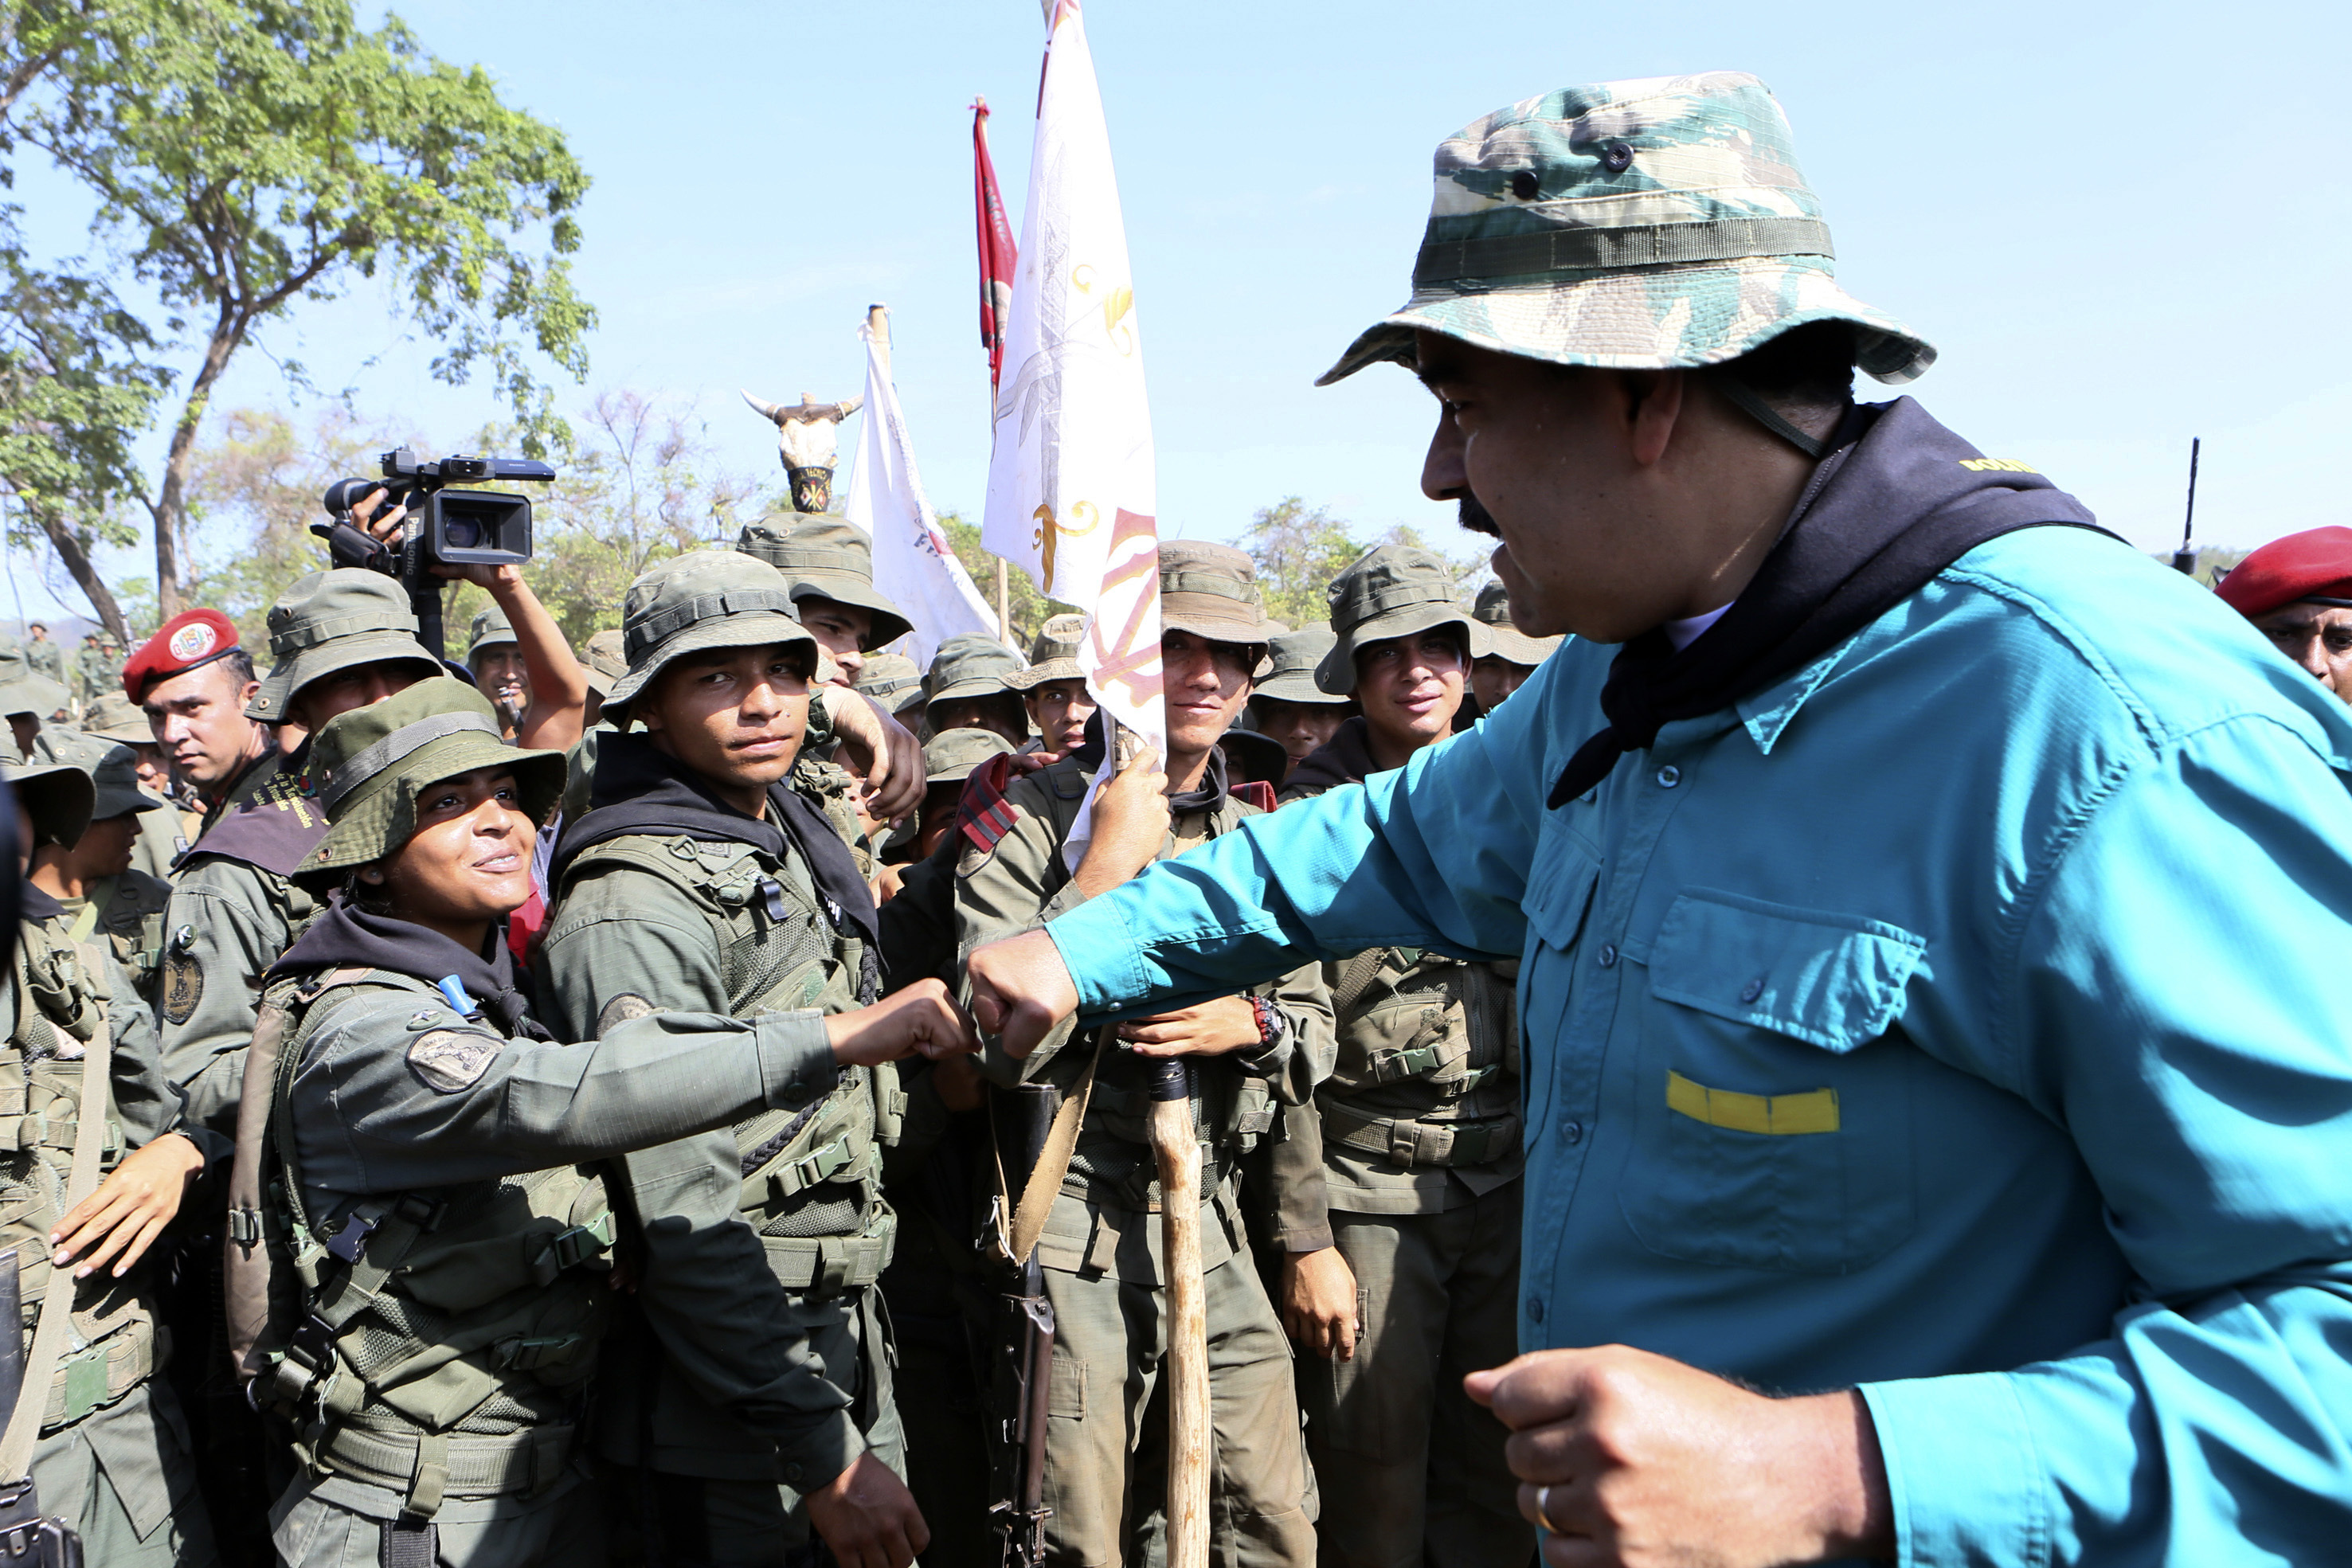 In this handout photo released by Miraflores Press Office, Venezuela's President Nicolas Maduro fist bumps with a cadet at the G/J José Laurencio Silva military training center in the state of Cojedes, Venezuela, May 4, 2019.